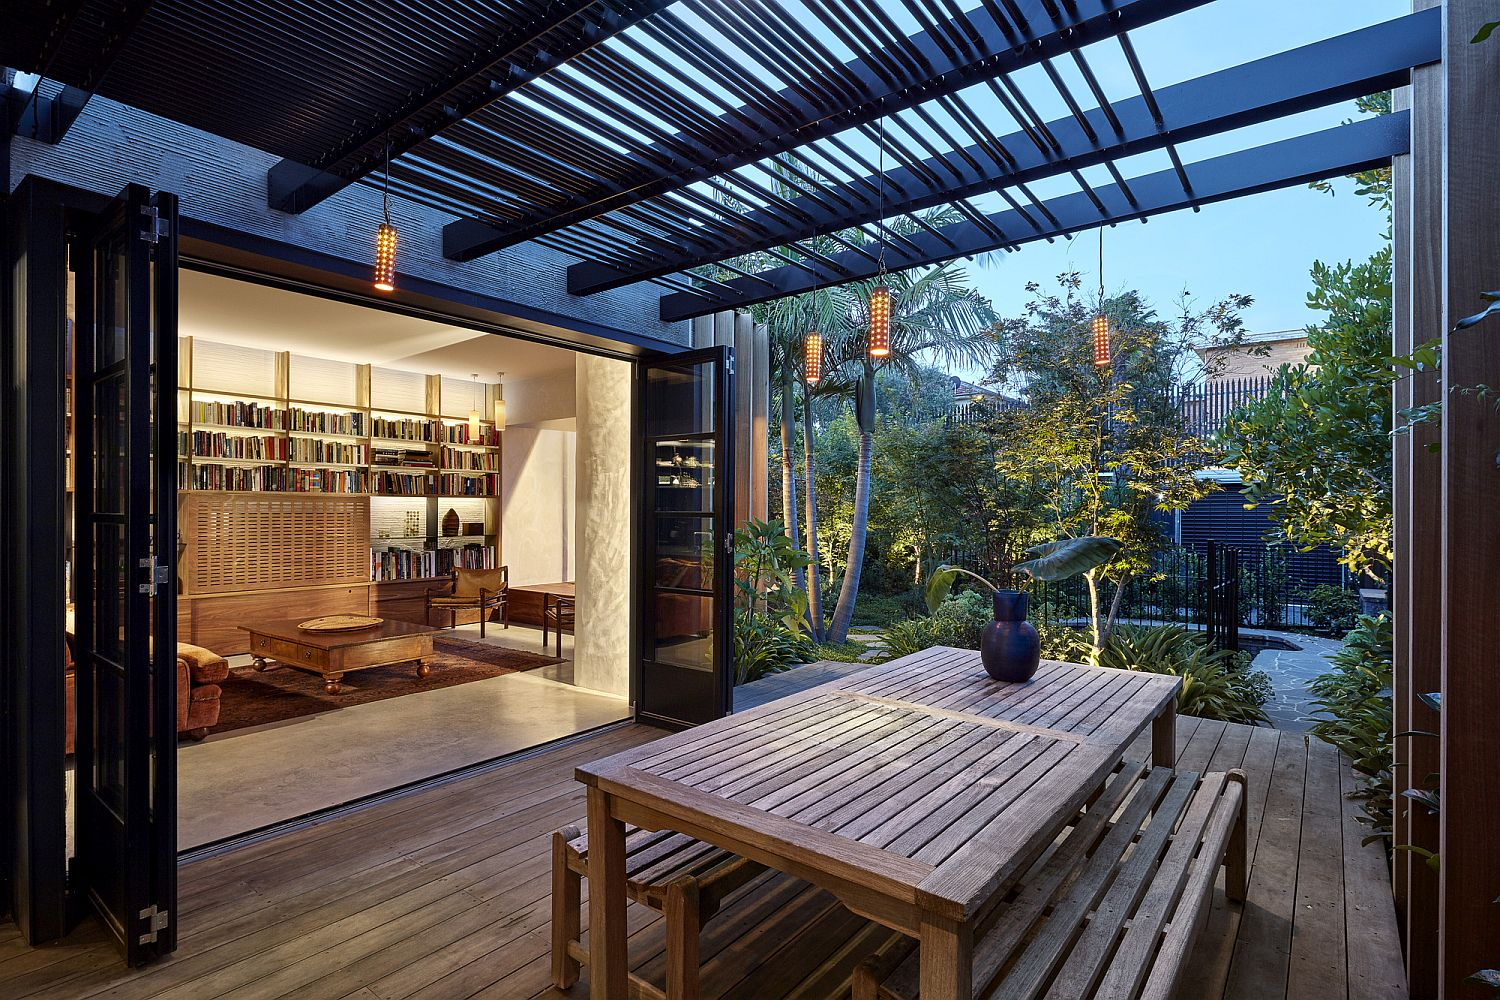 Pergola-structure-offers-shade-and-also-helps-illuminate-the-wooden-deck